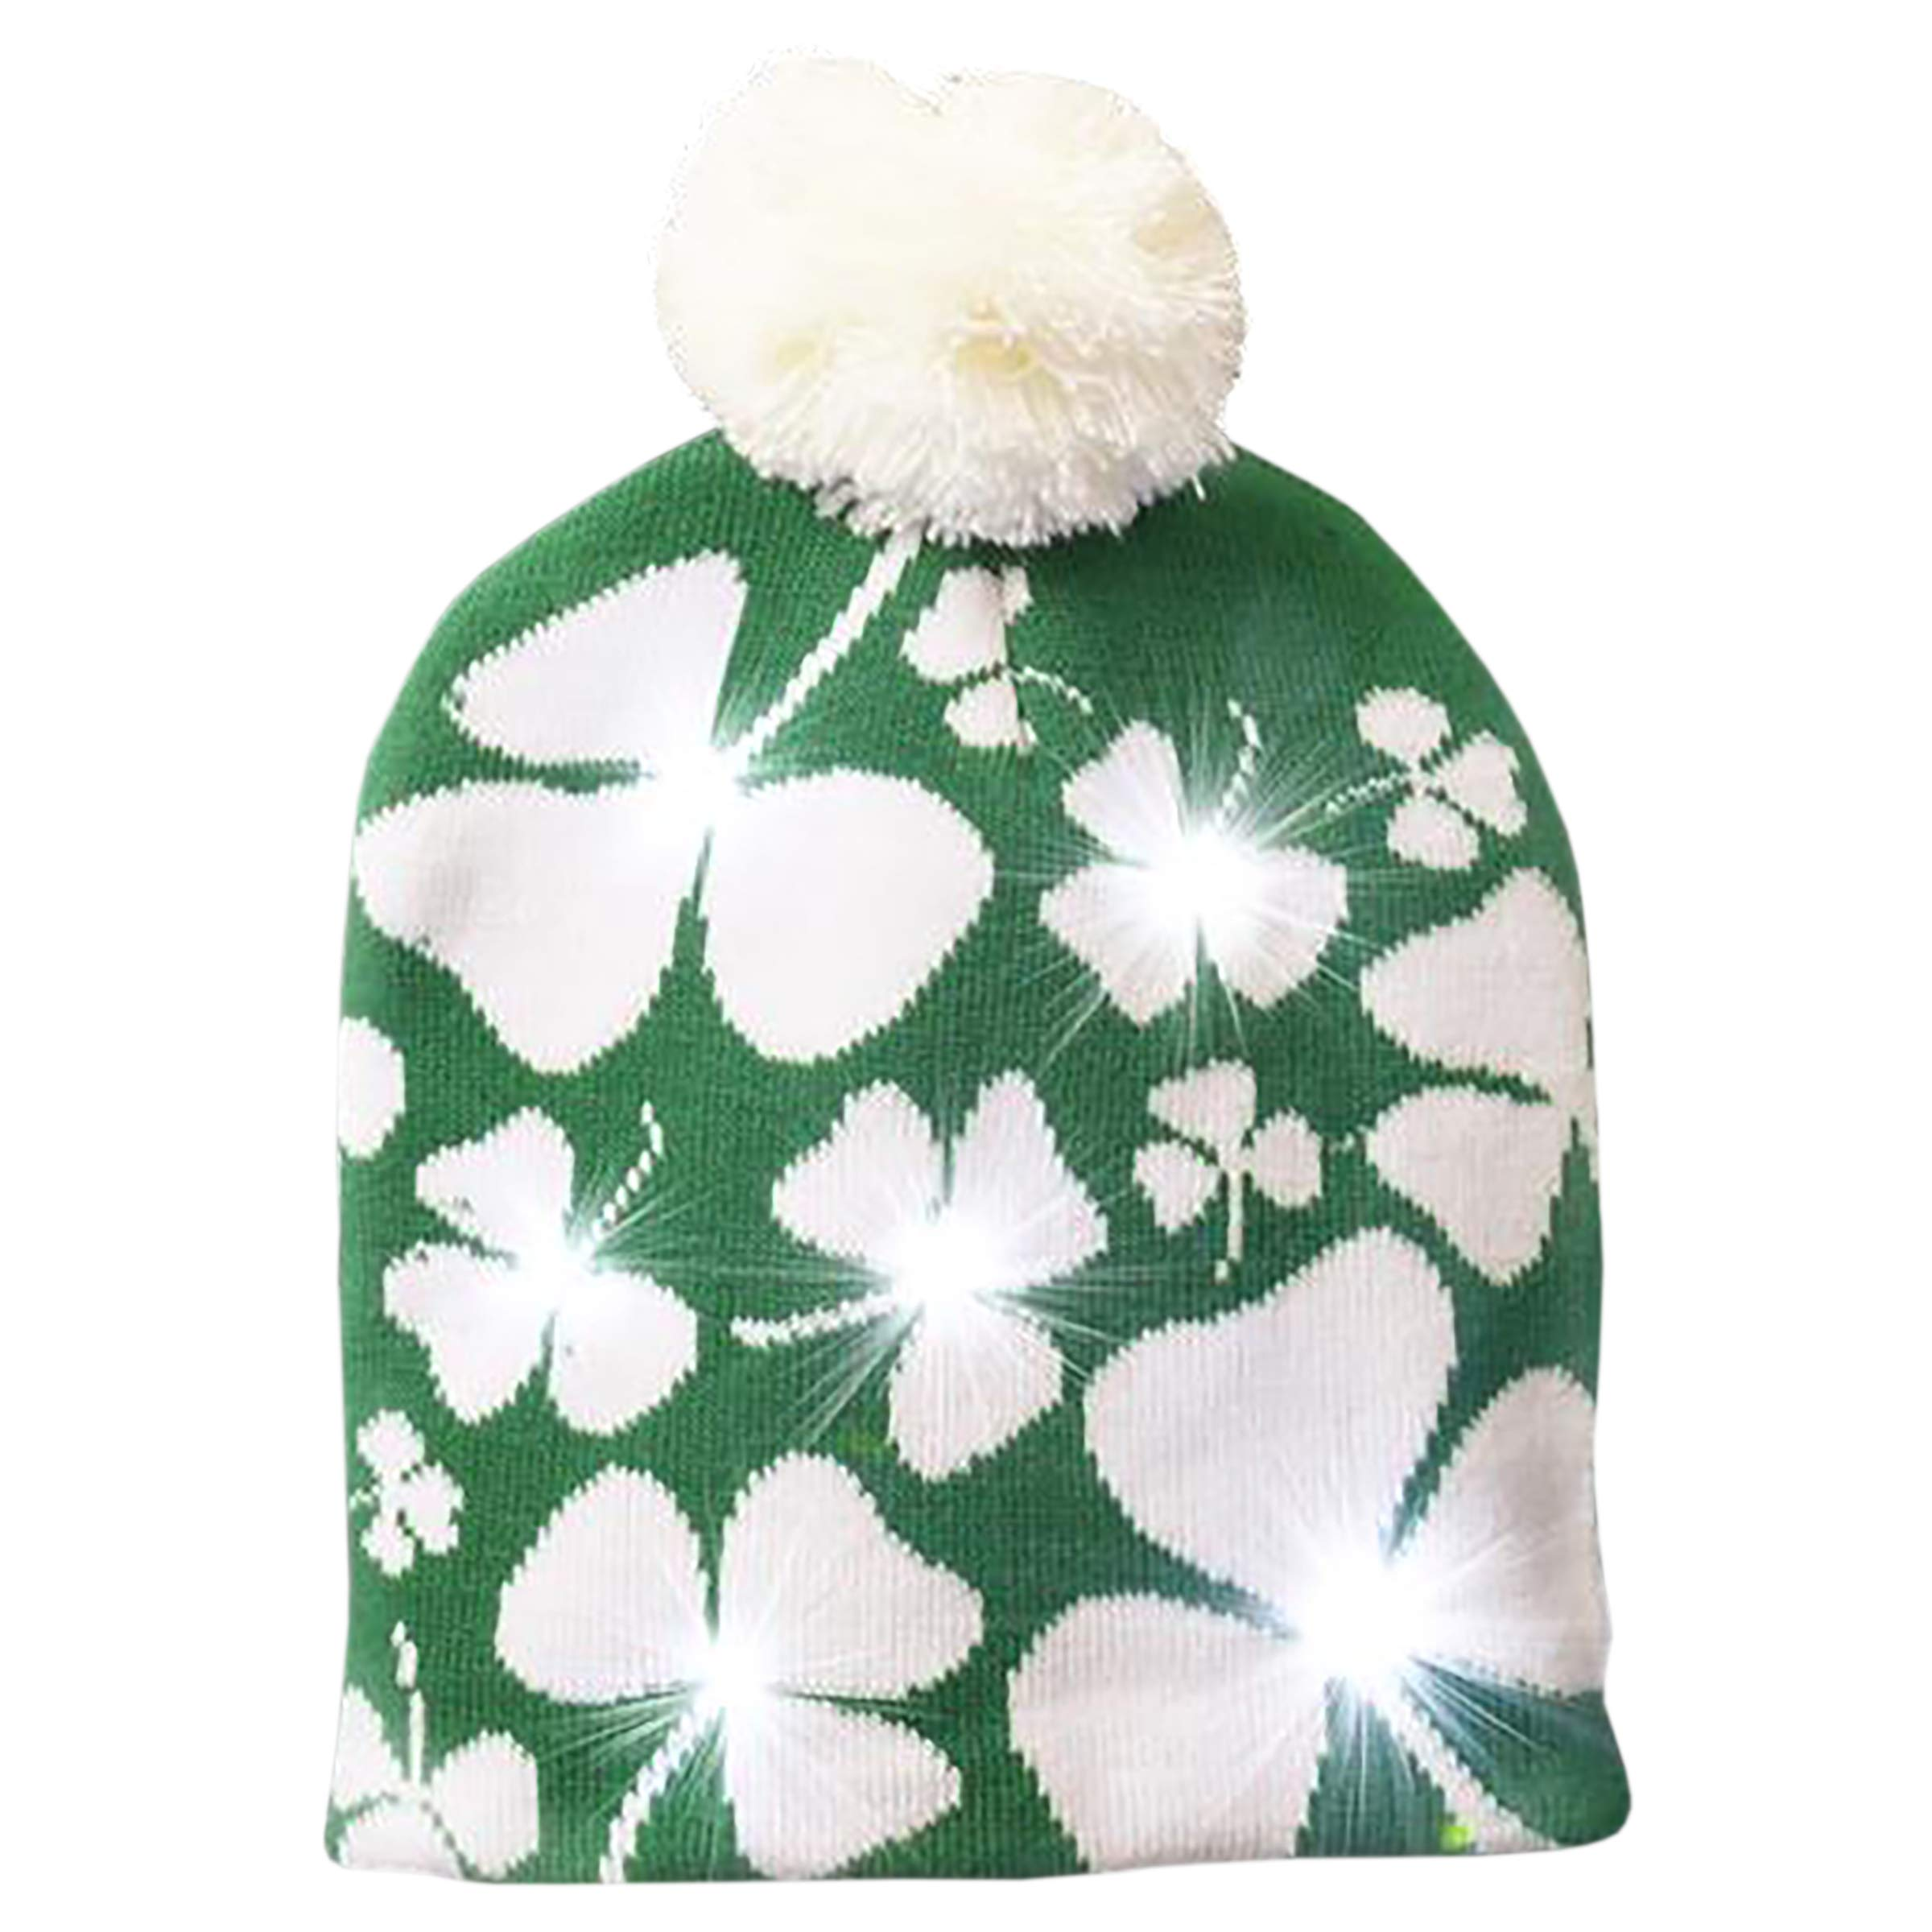 c9ad2347121 Rhode Island Novelty LED Saint Patrick s Day Winter Hats Knitted ...